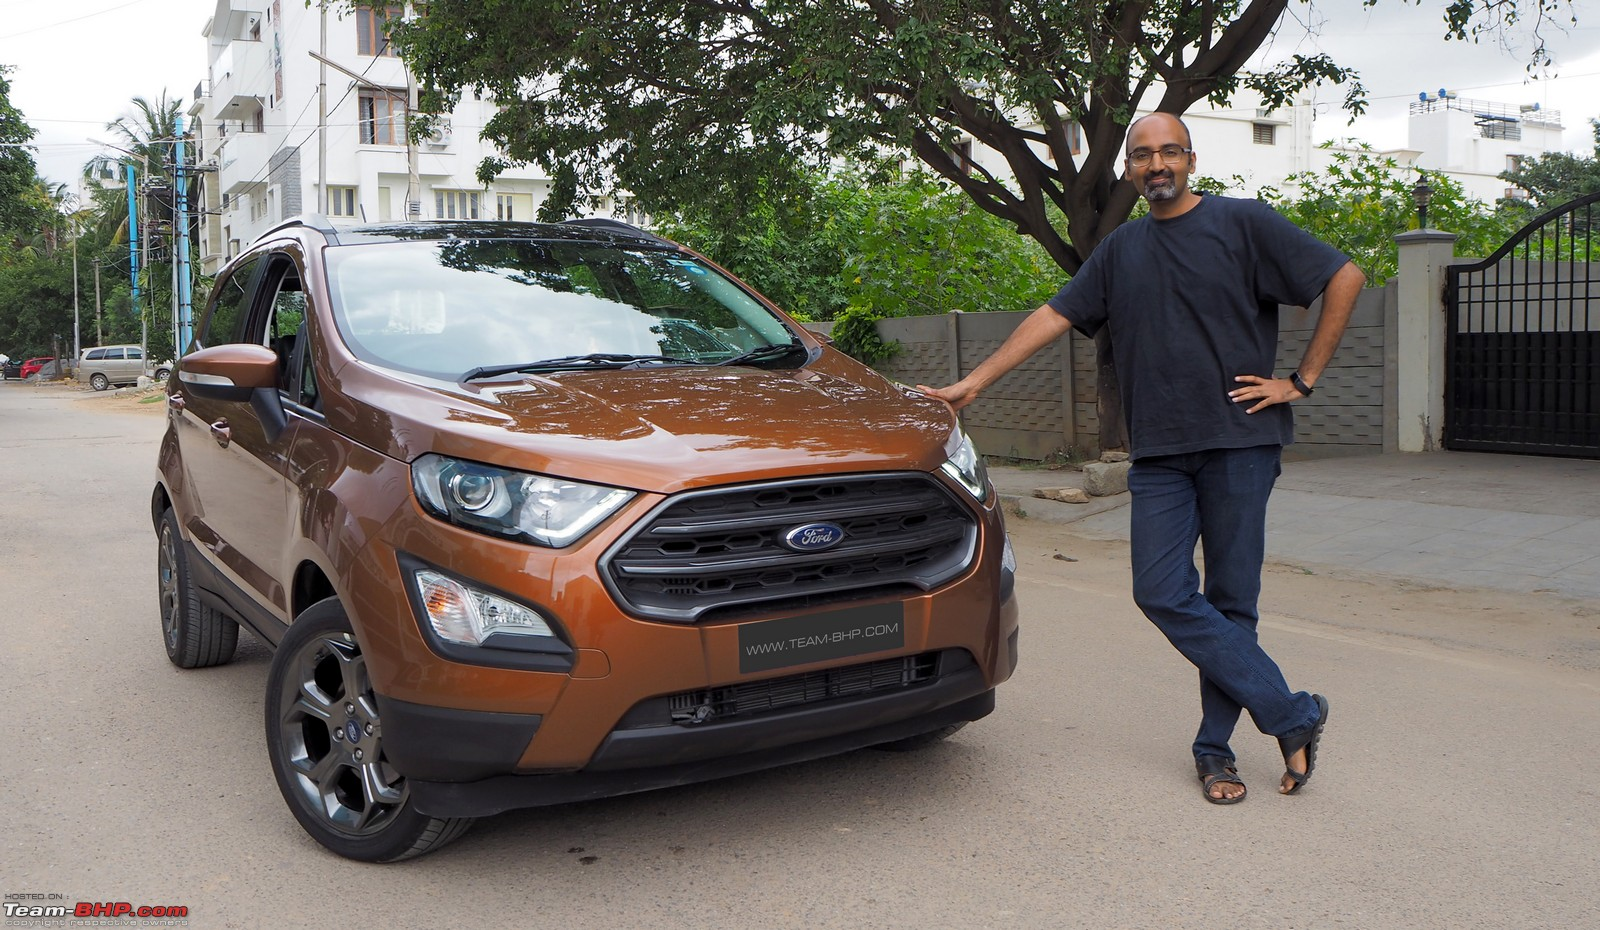 Since The Ford Ecosport Has Already Been Reviewed By Team Bhp This Report Will Only Focus On Changes Made To The New Ecoboost S Variant